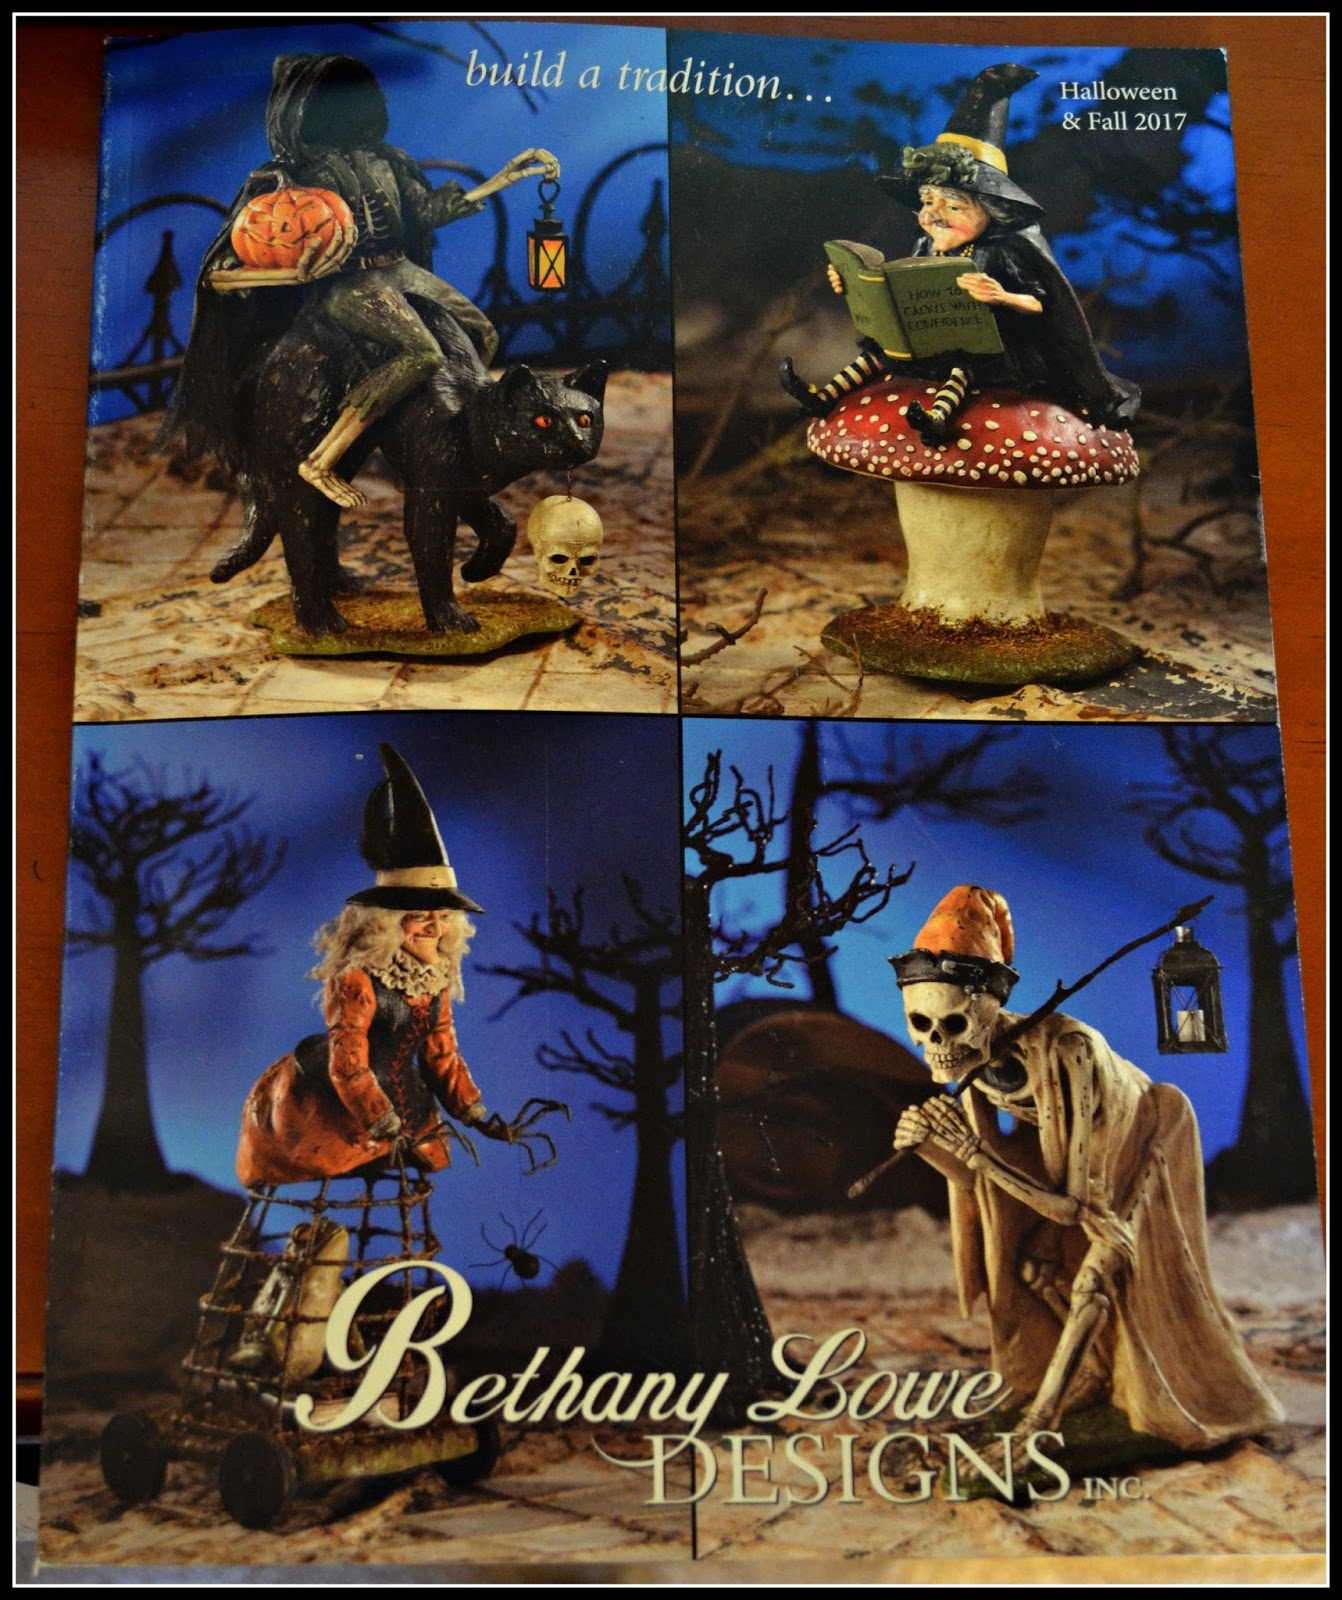 you might be interested in becoming a wholesaler of bethany lowe items you can find them at wwwbethanylowedesignscom request a catalog - Halloween Catalog Request